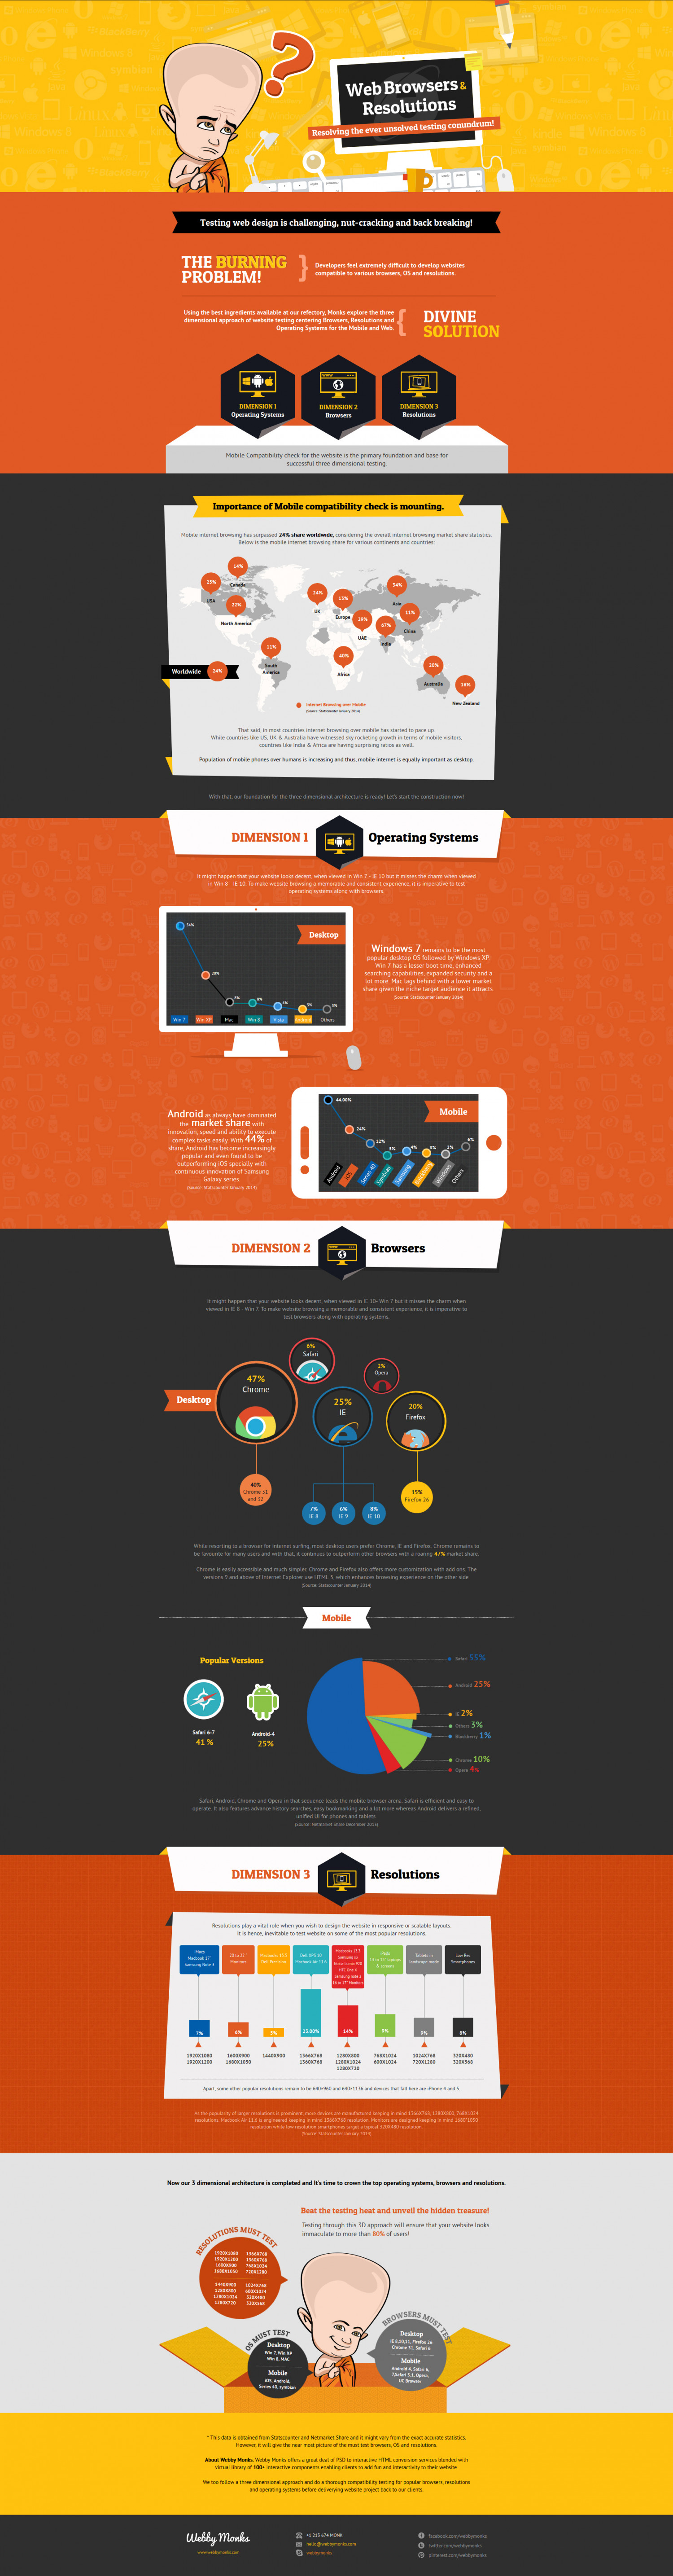 Website Testing Infographic - A 3 dimensional approach towards website testing! Infographic